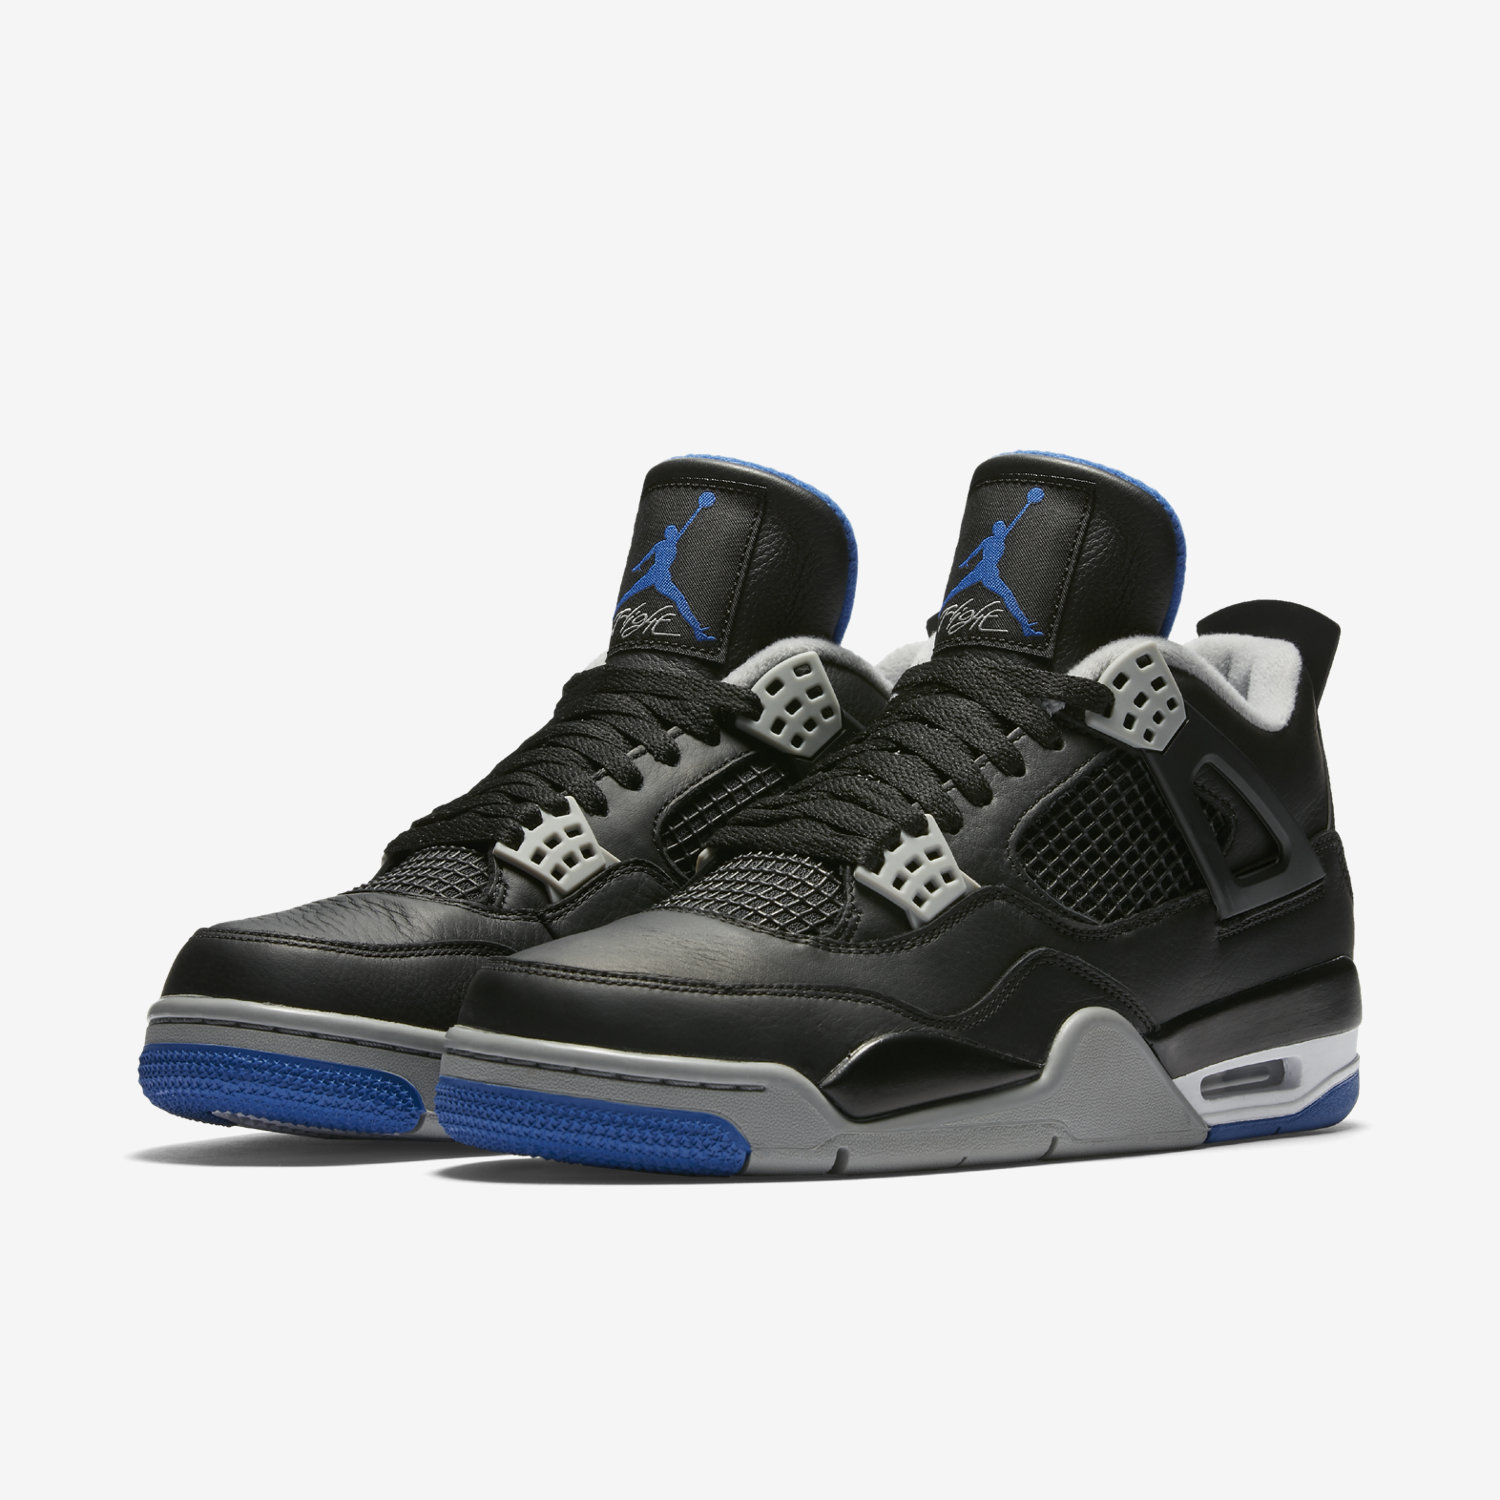 Nike air jordan 3 retro black Le commerce de gros 3P4VN6